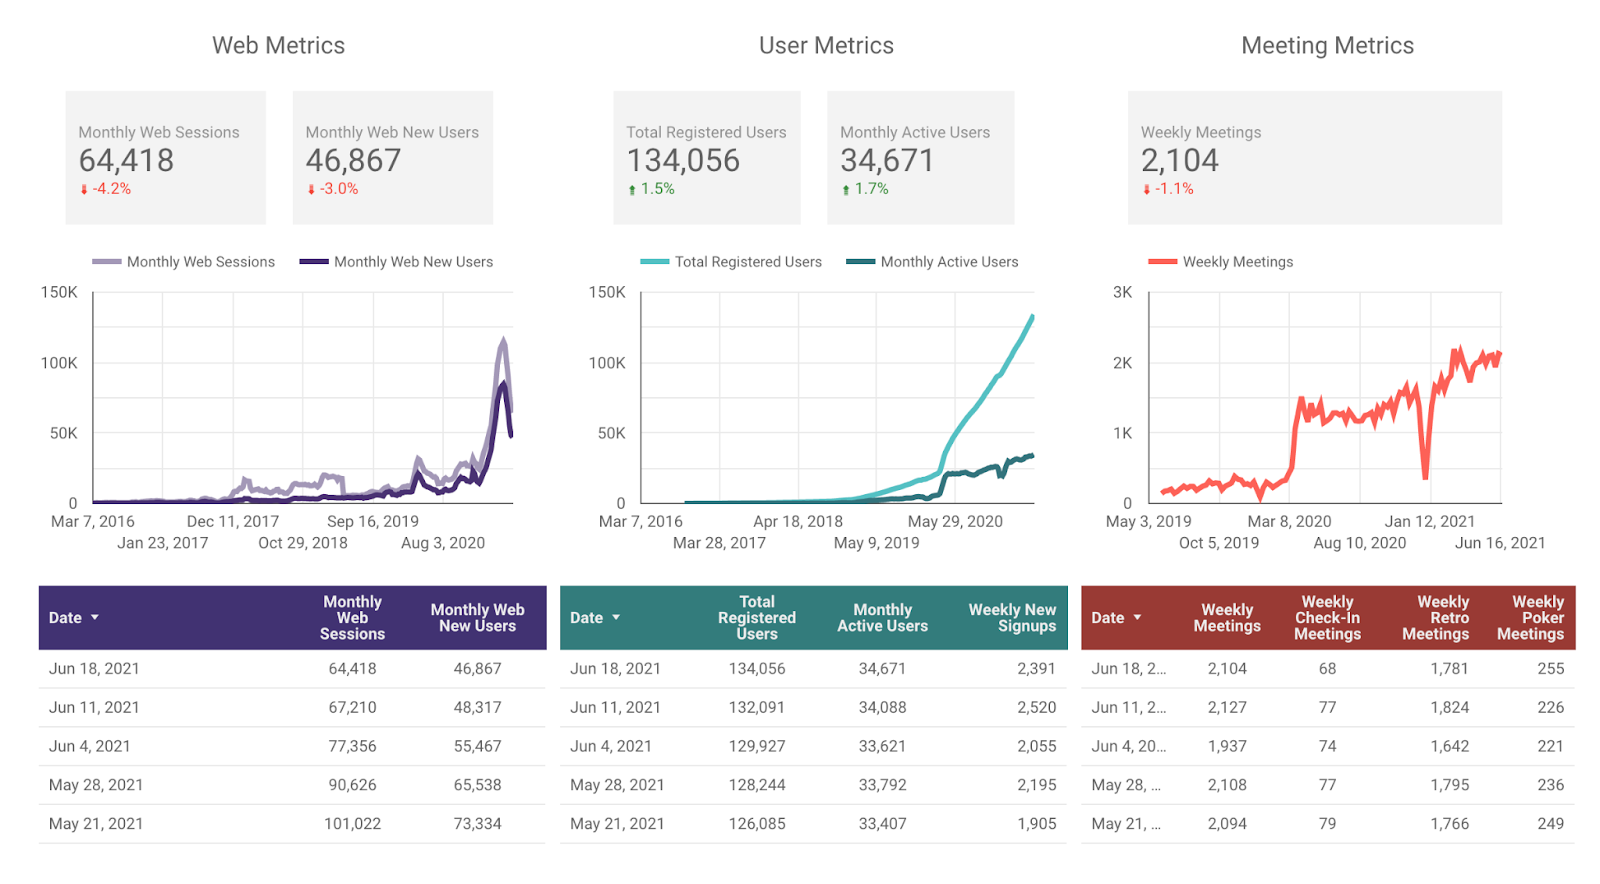 Web, user, and meeting metrics from this week